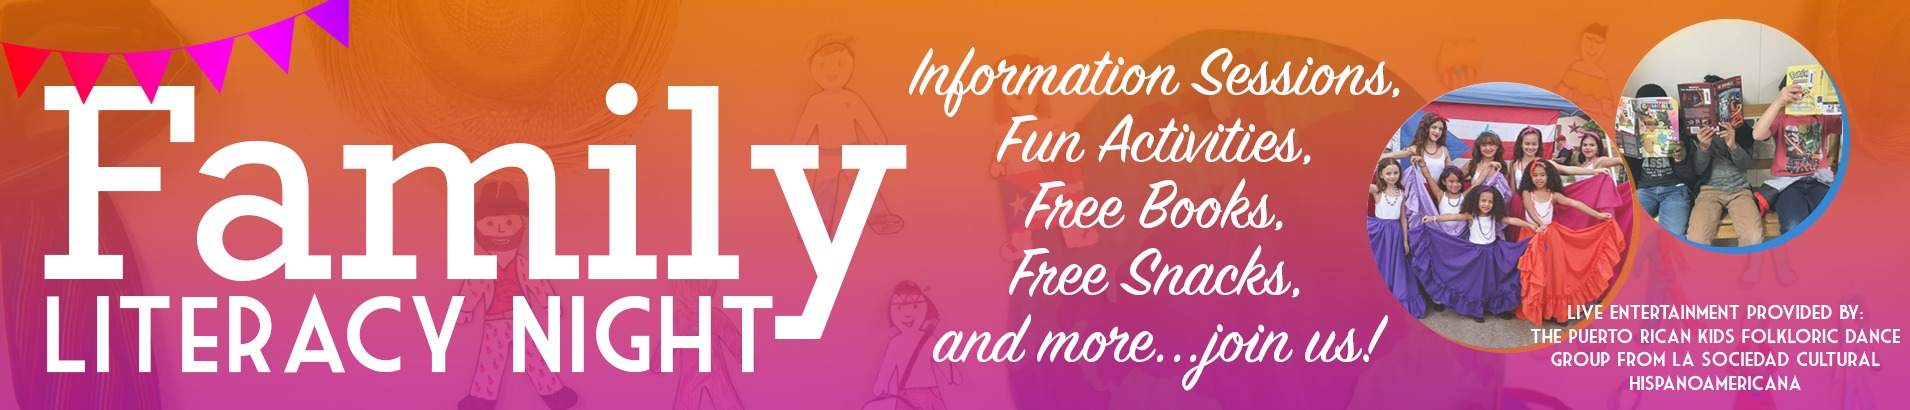 Family Literacy Night Web Banner: text reads - Information Sessions, Fun Activities, Free Books, Free Snacks, and more...join us!